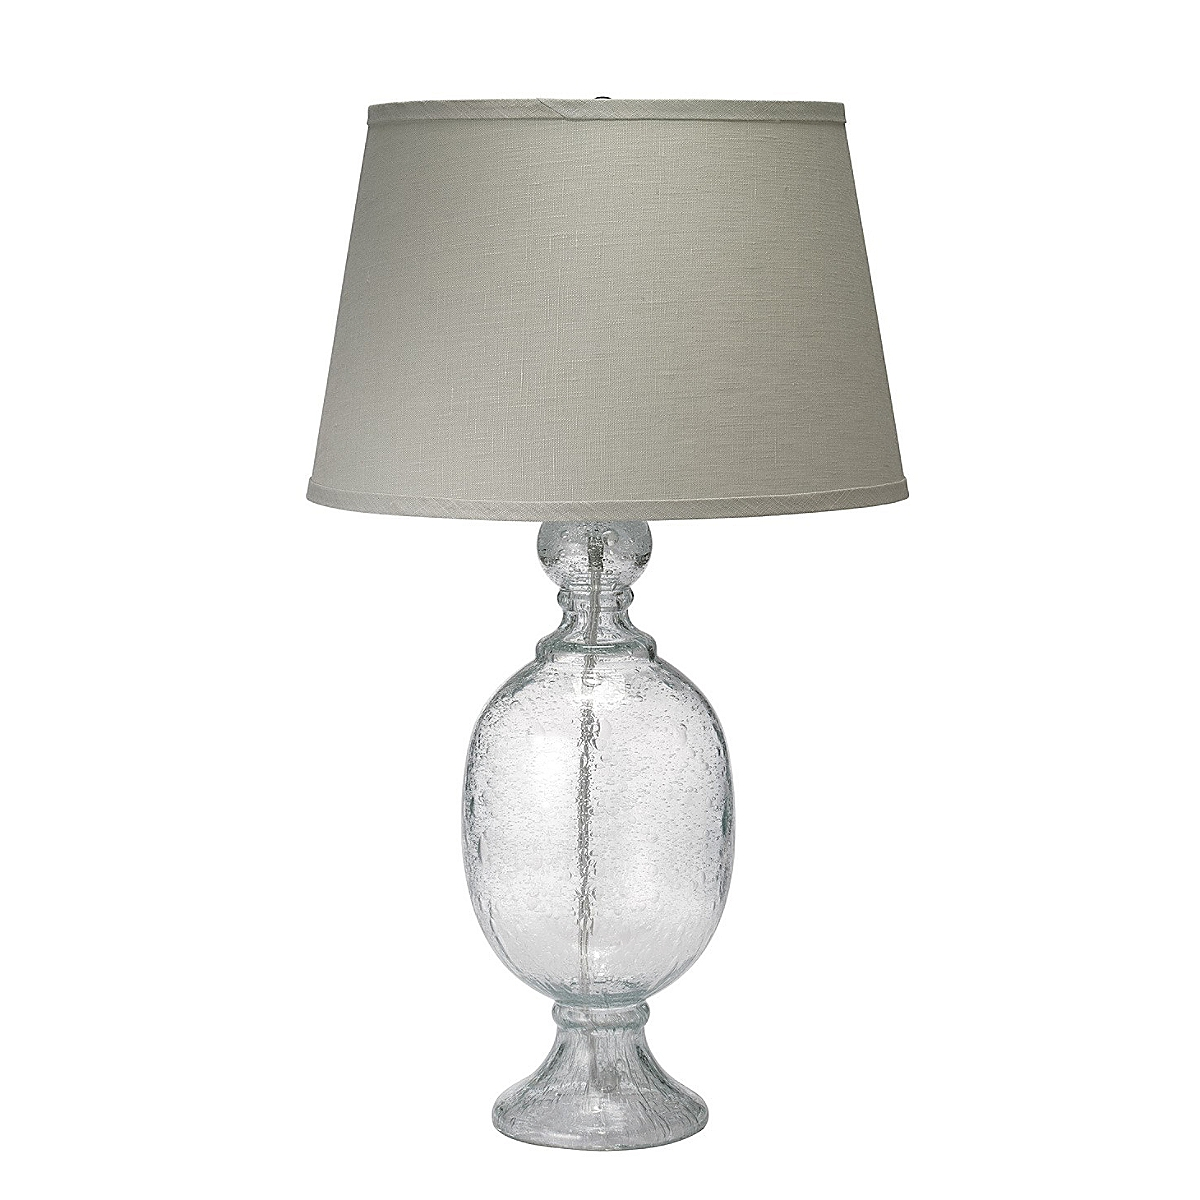 St. Charles Table Lamp Small - Seeded Glass